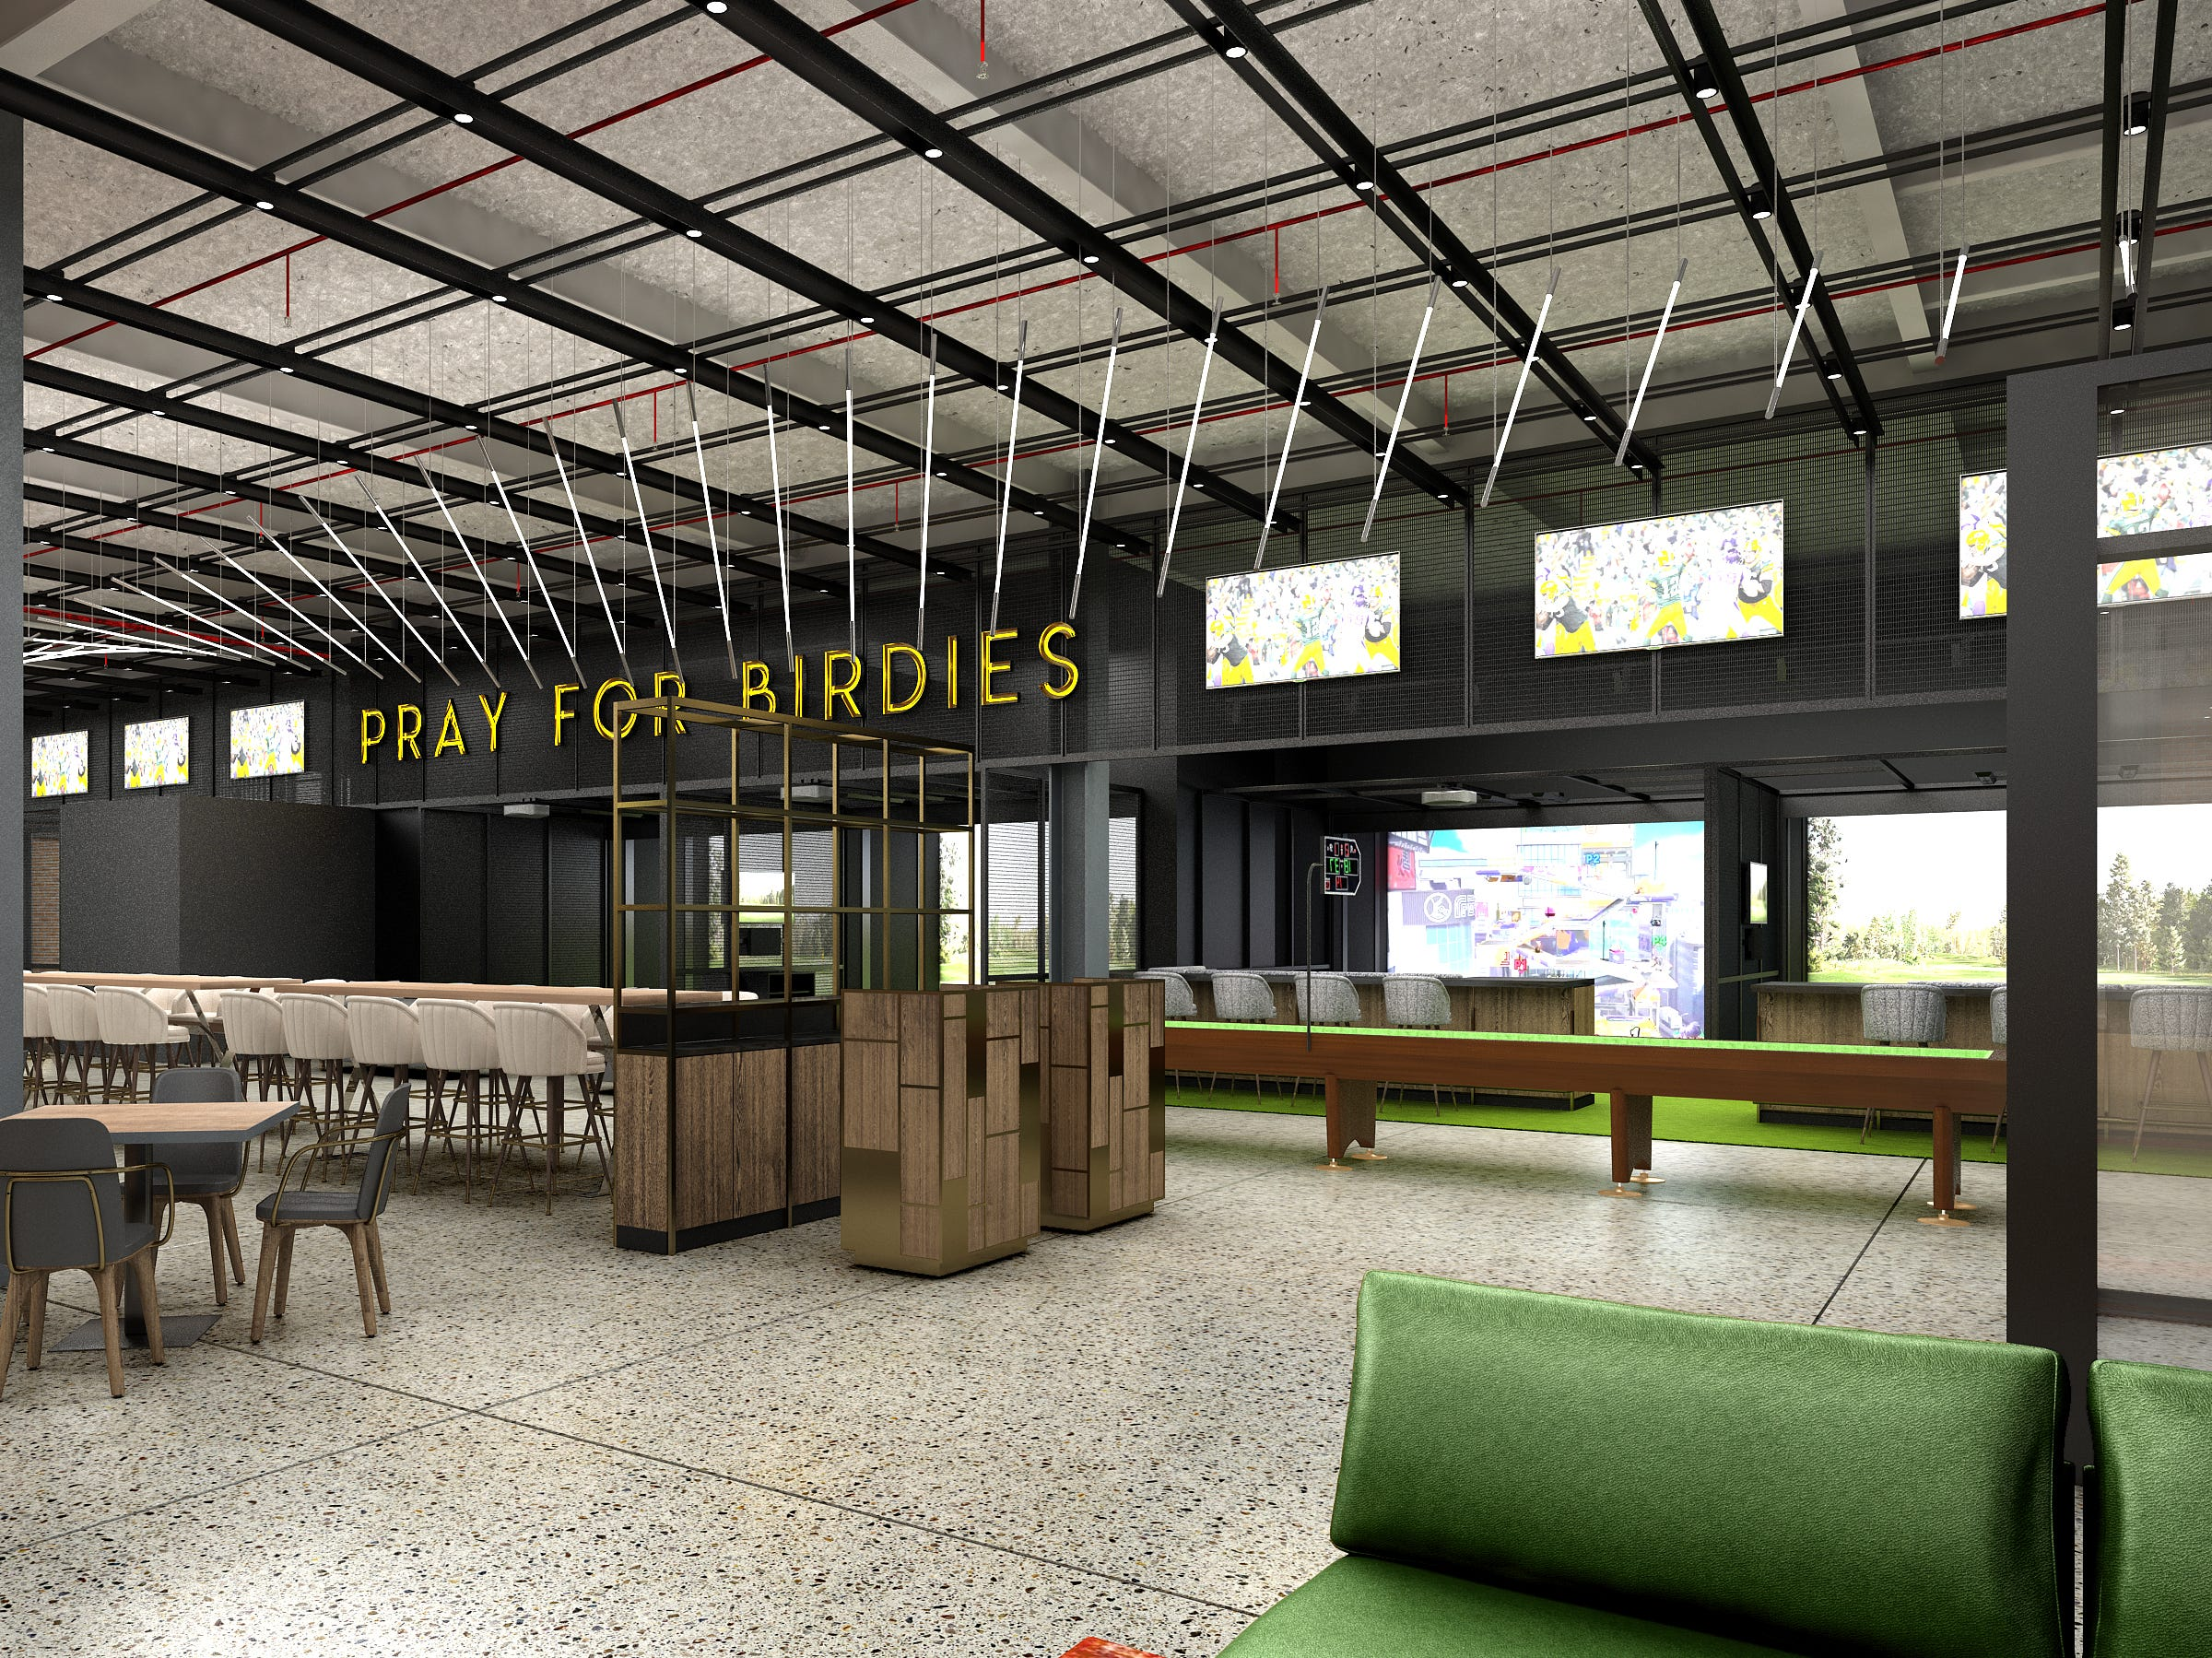 Artist's rendering of a new restaurant and hi-tech entertainment establishment in the Green Bay Packers' TitletownTech building.